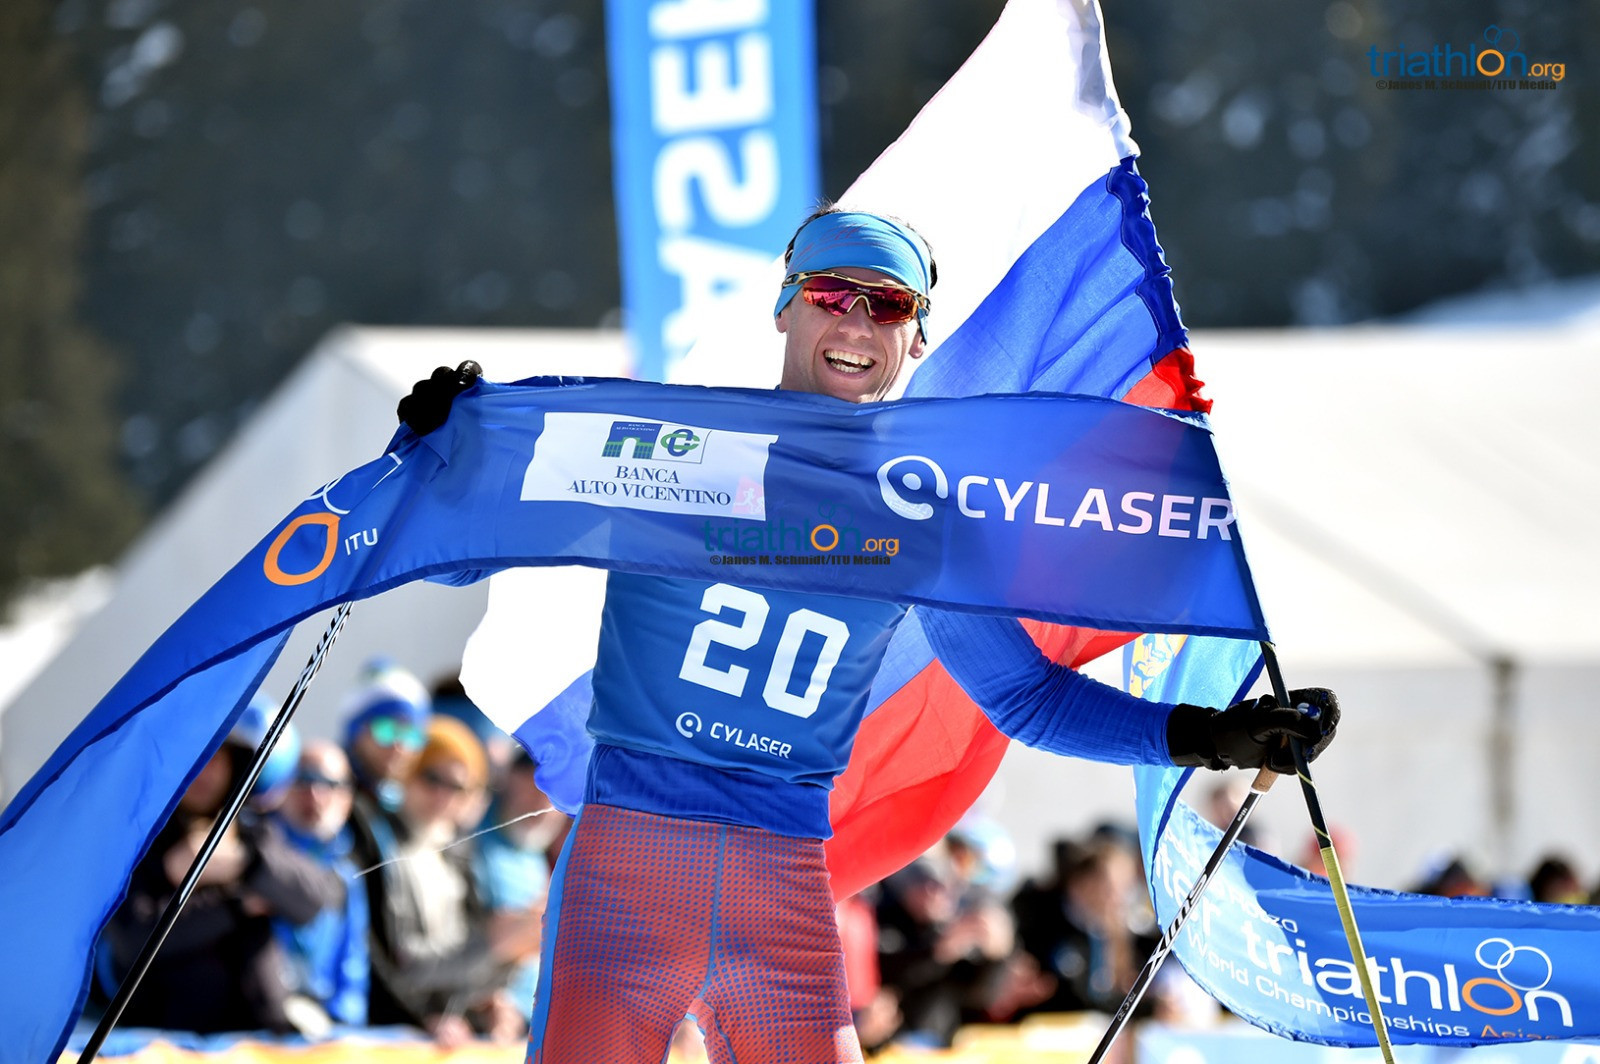 Andreev defends men's title again at ITU Winter Triathlon World Championships in Asiago